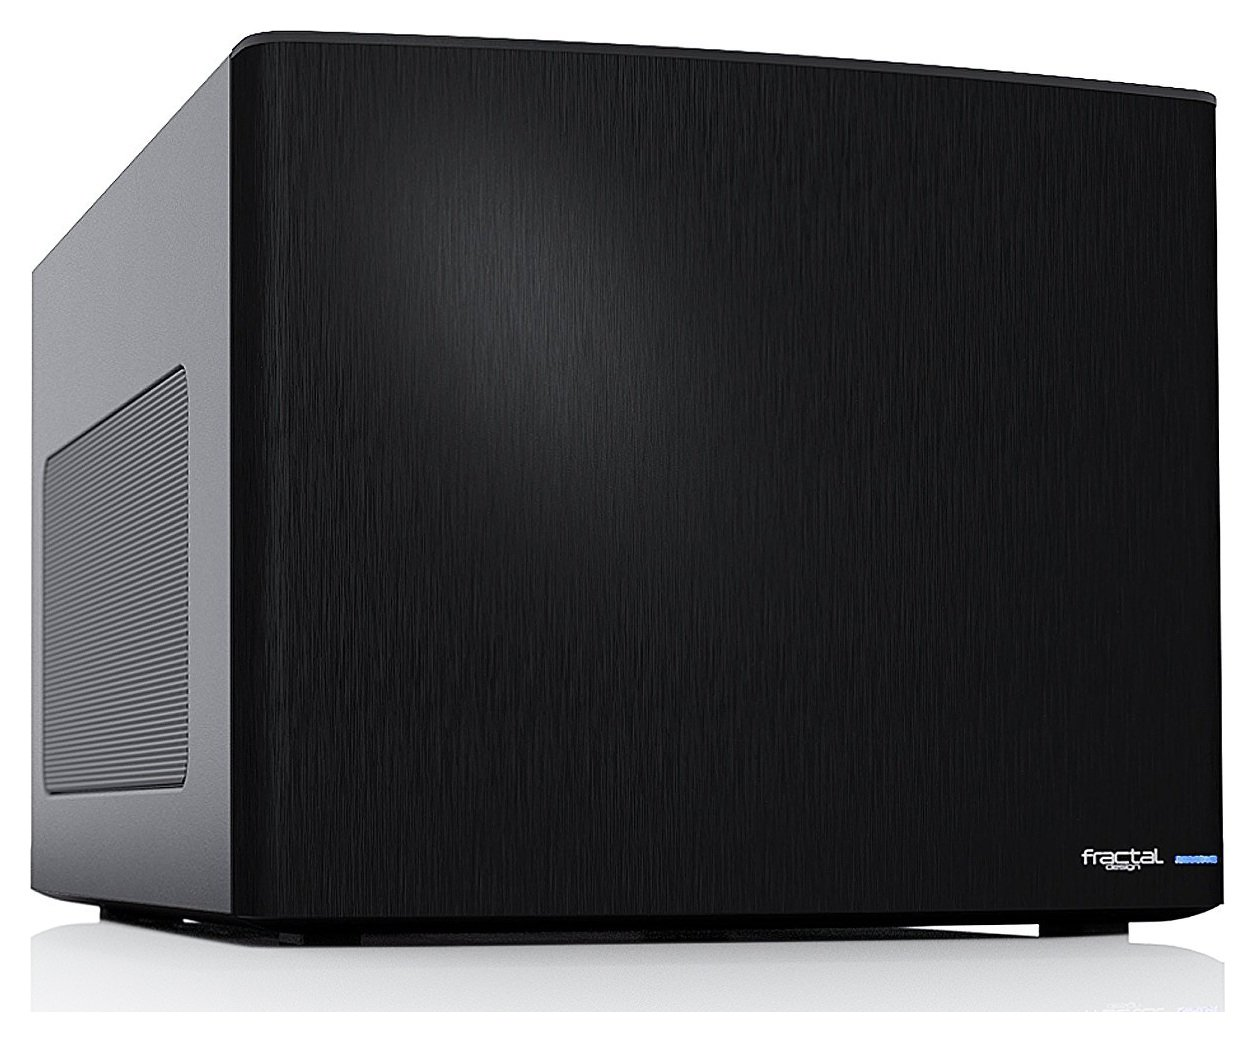 fractal-design-node-304-mini-itx-pc-case-black